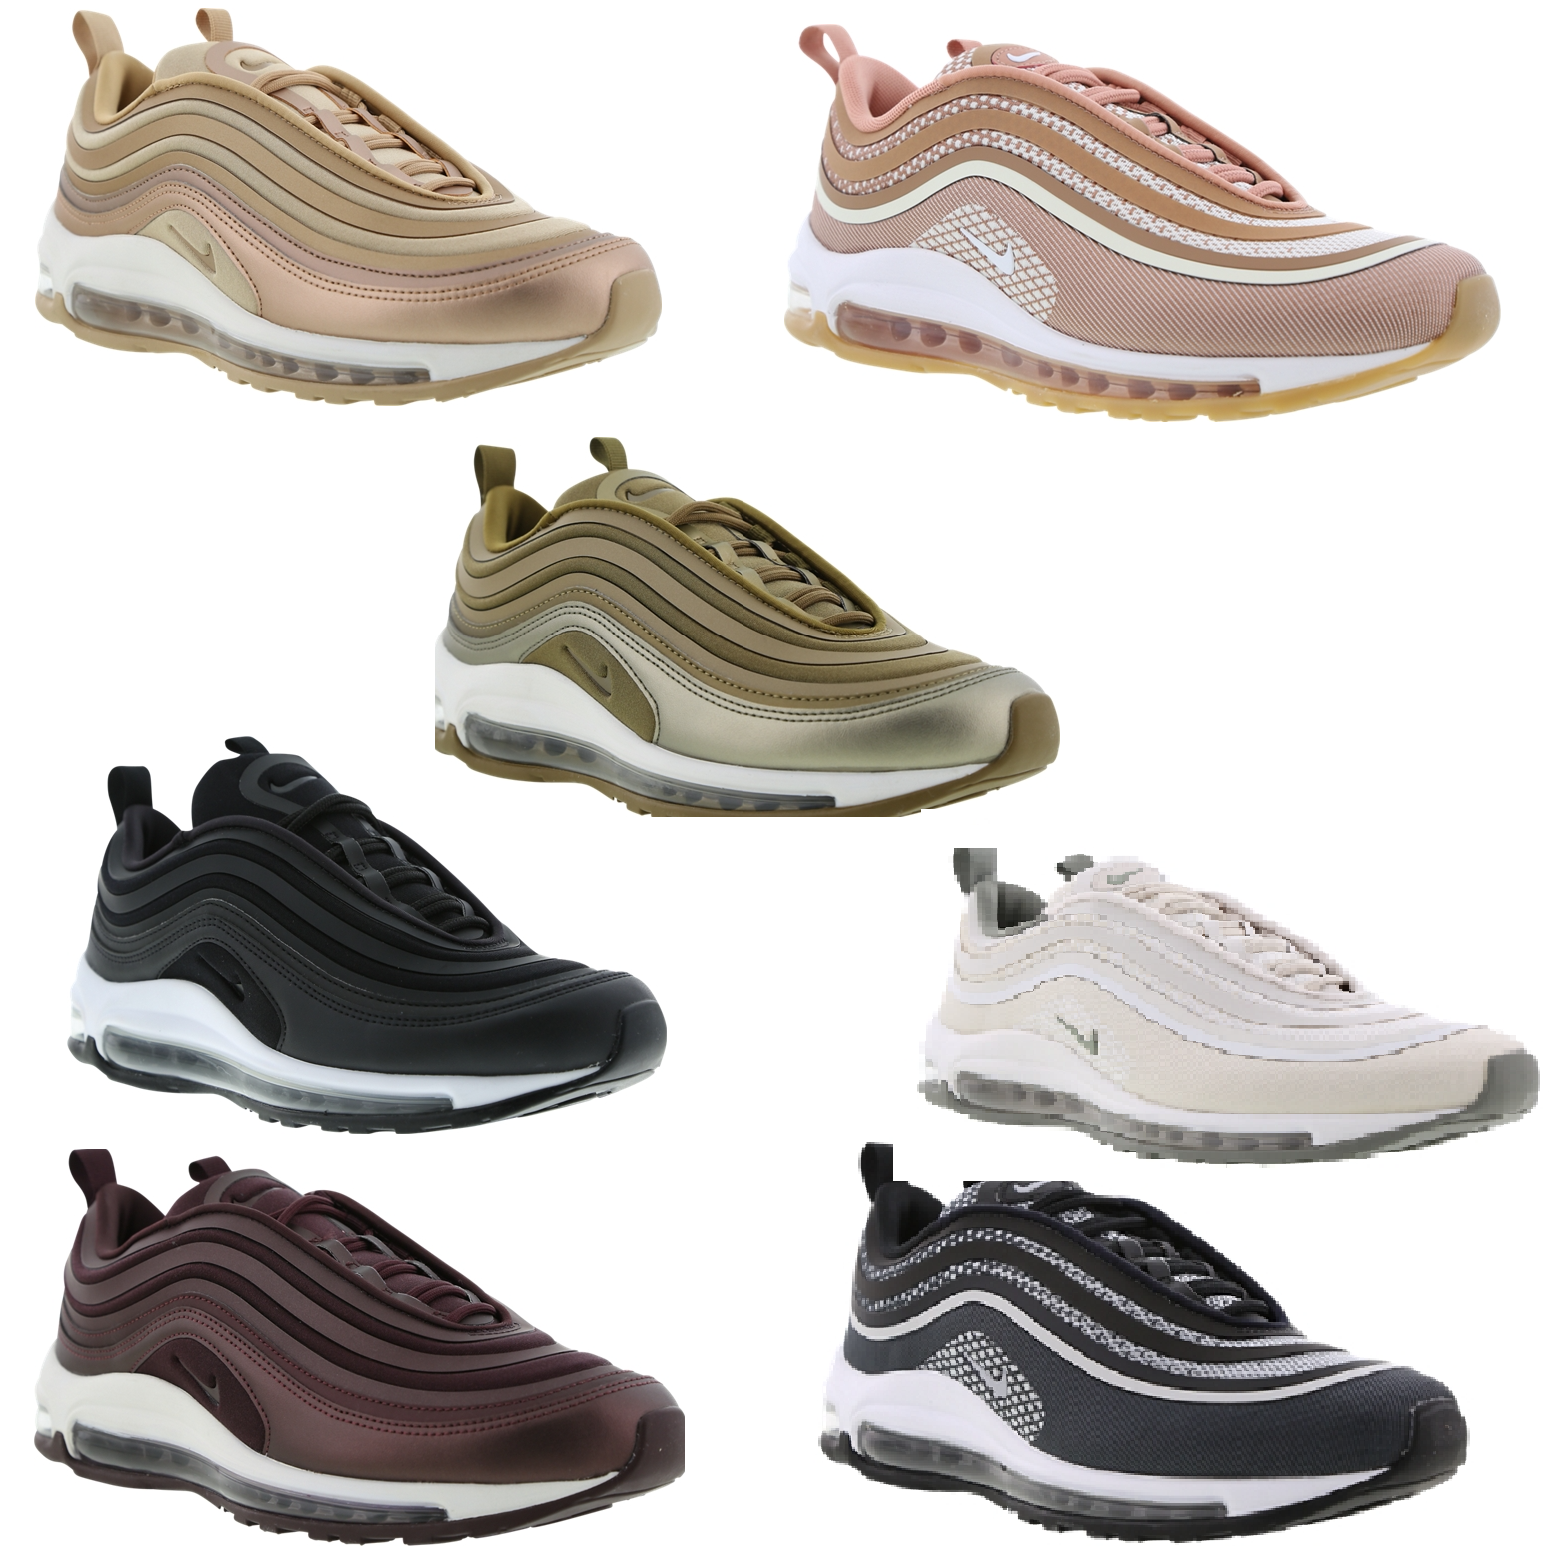 Check Out All Nike Air Max 97 Ultra '17 Women's Trainers On